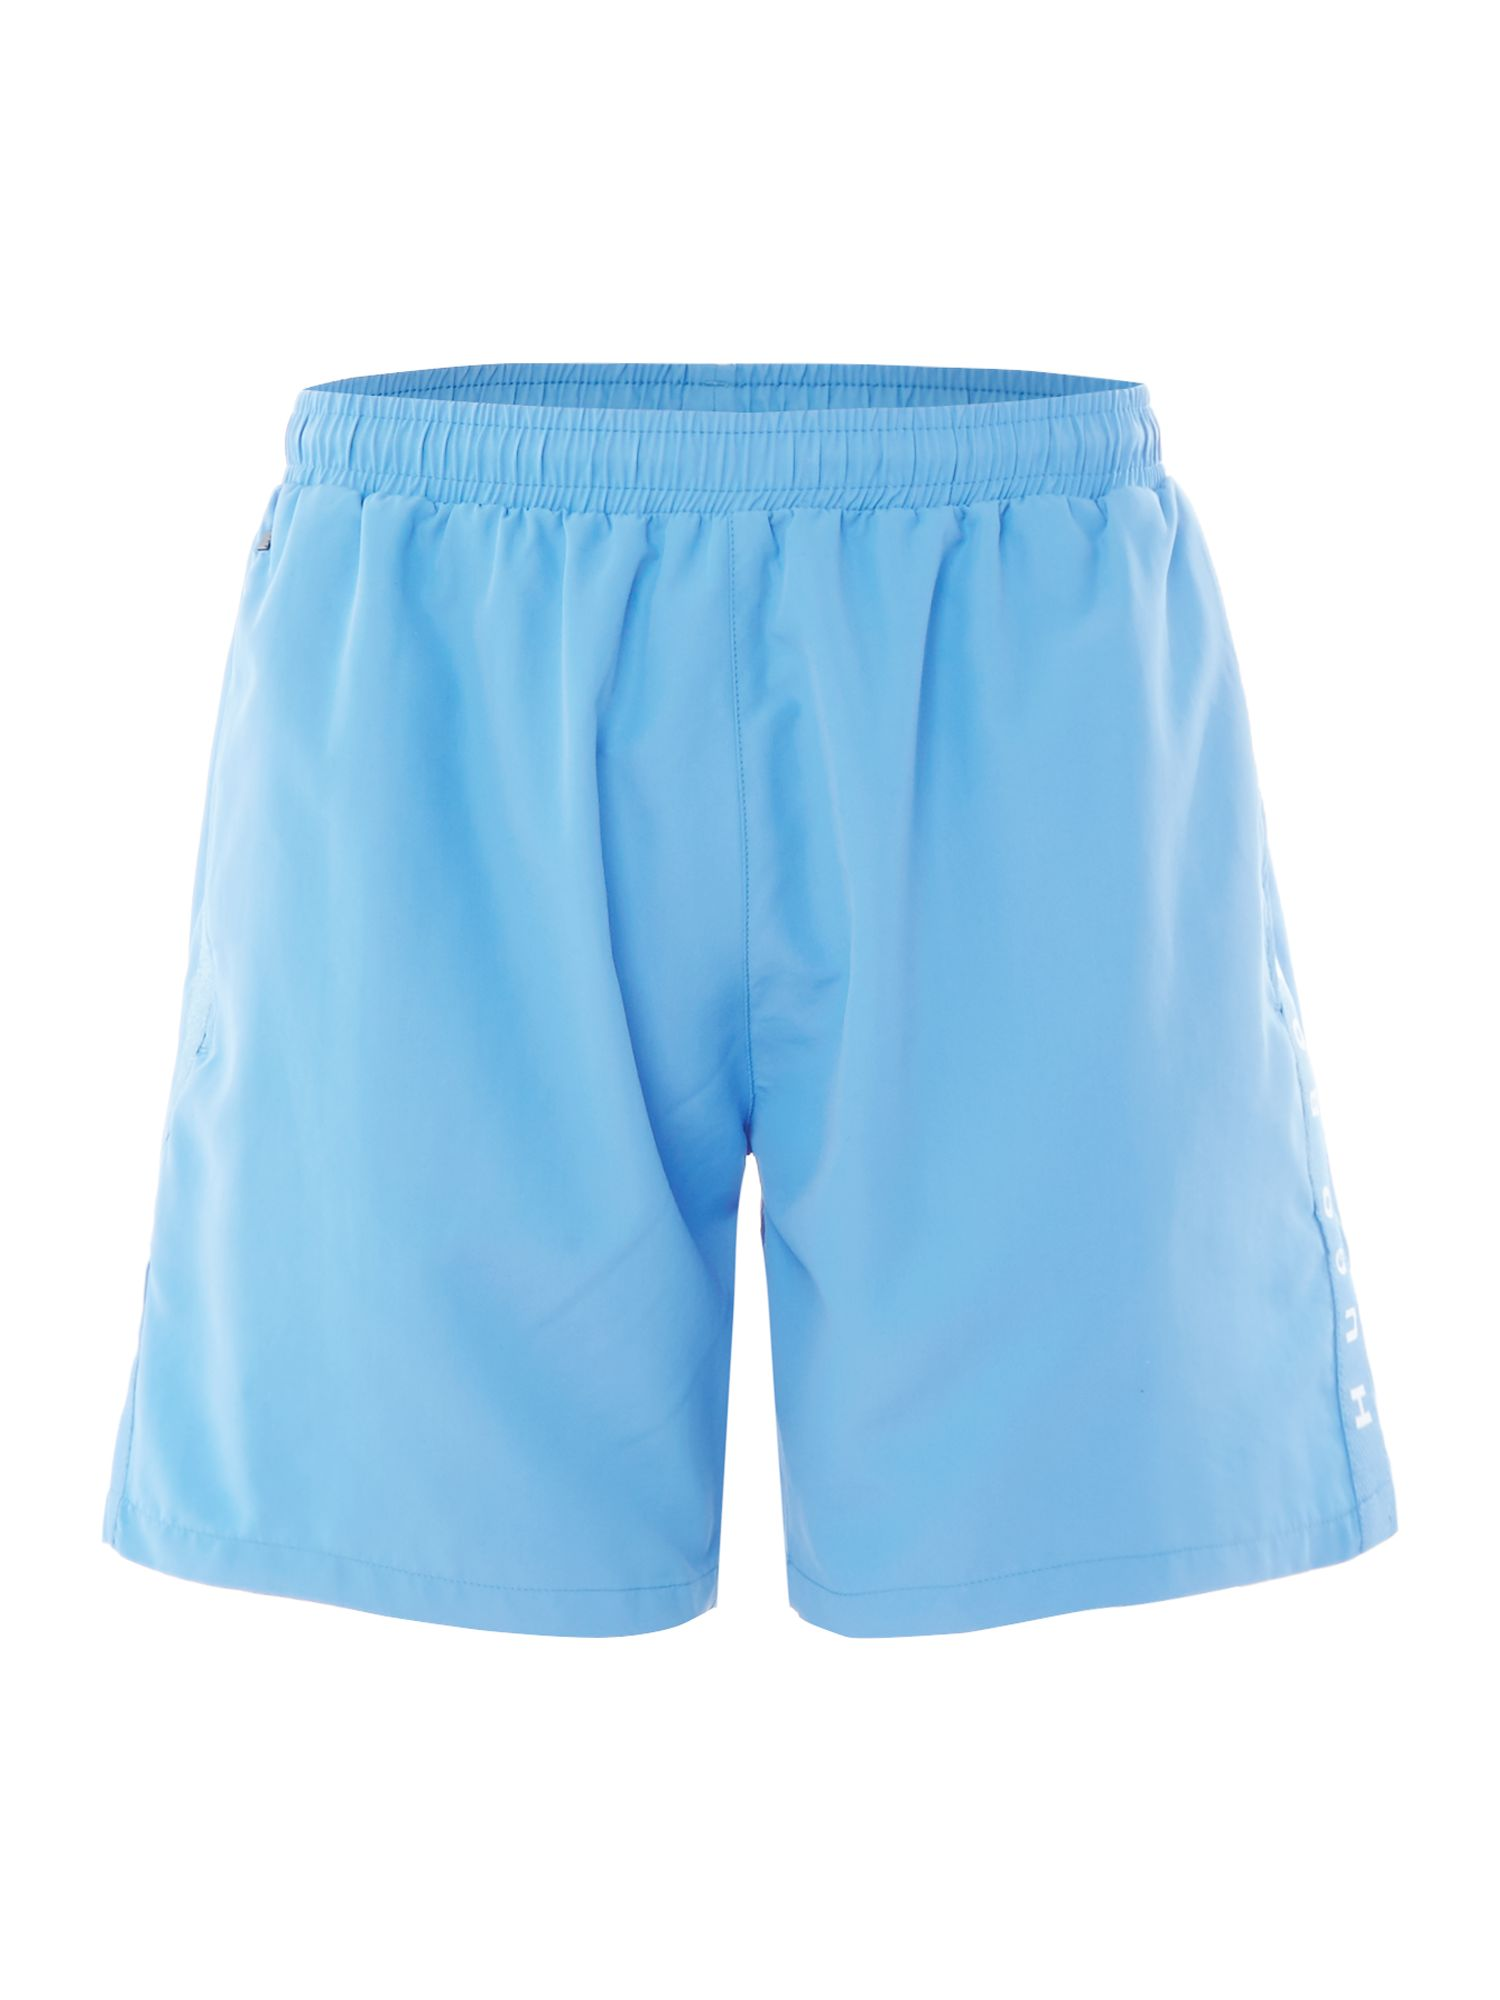 Men's Hugo Boss Seabream Swim Shorts, Blue